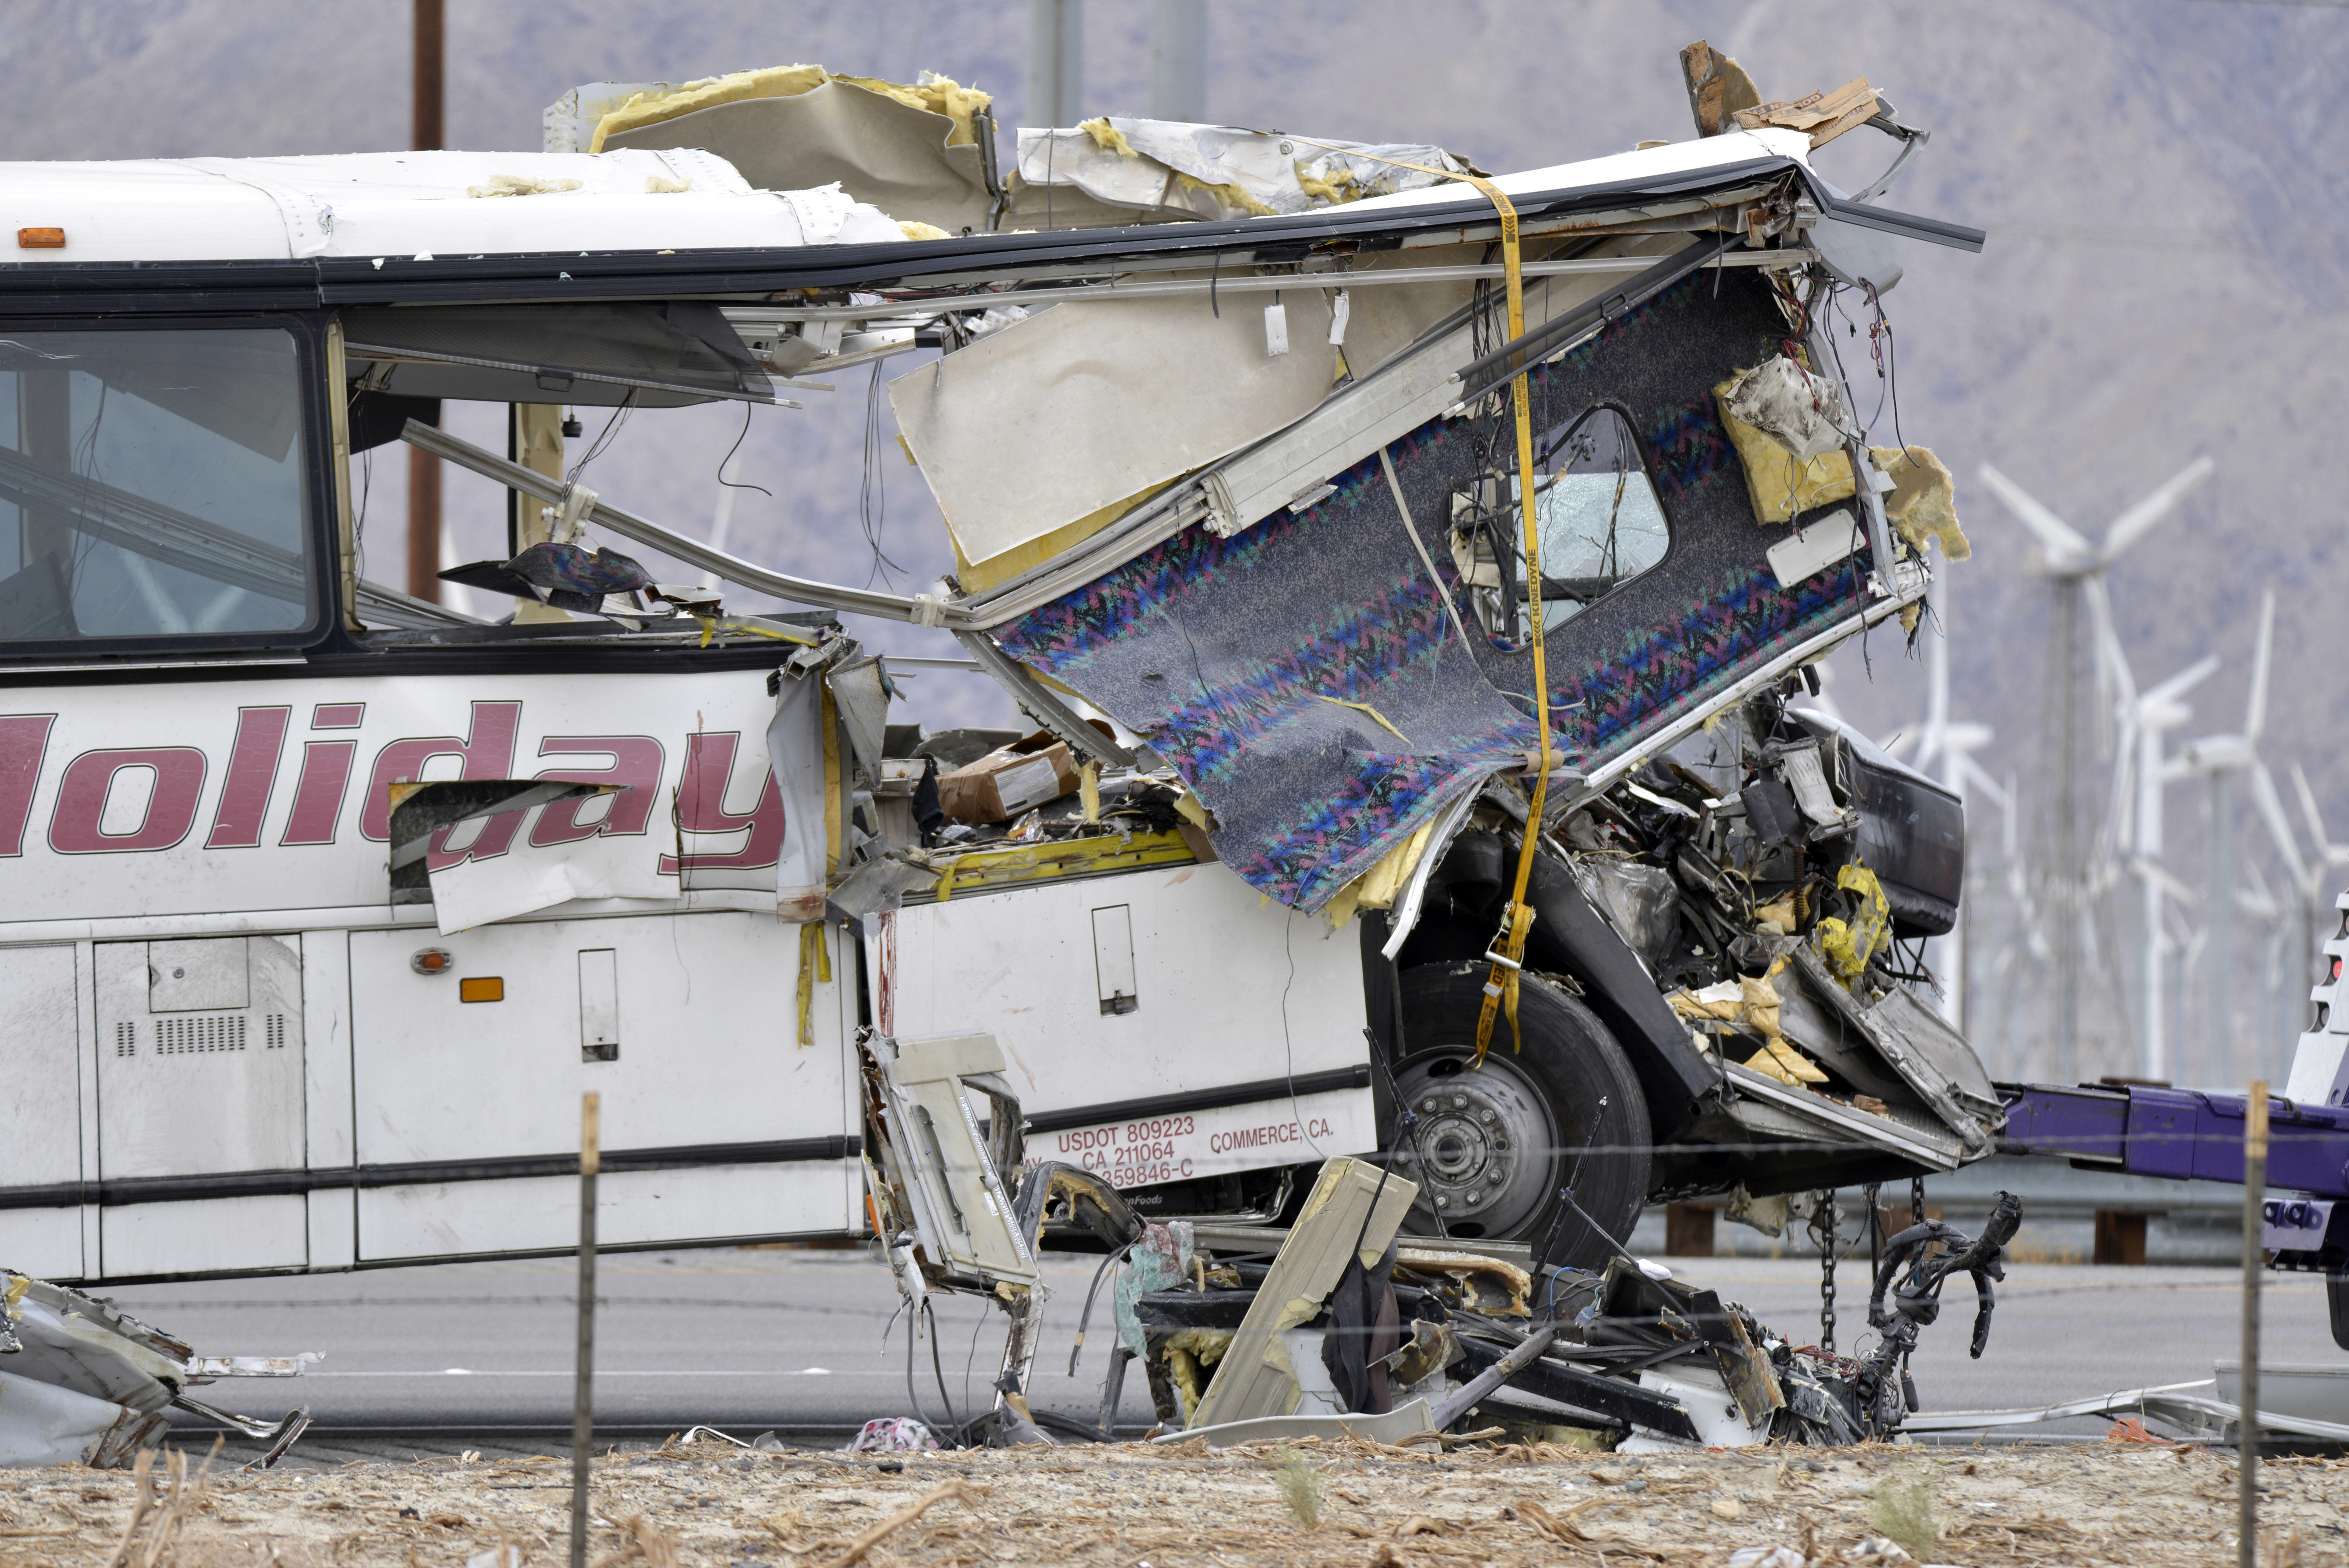 Official: Tour bus driver didn't brake in deadly Palm Springs crash